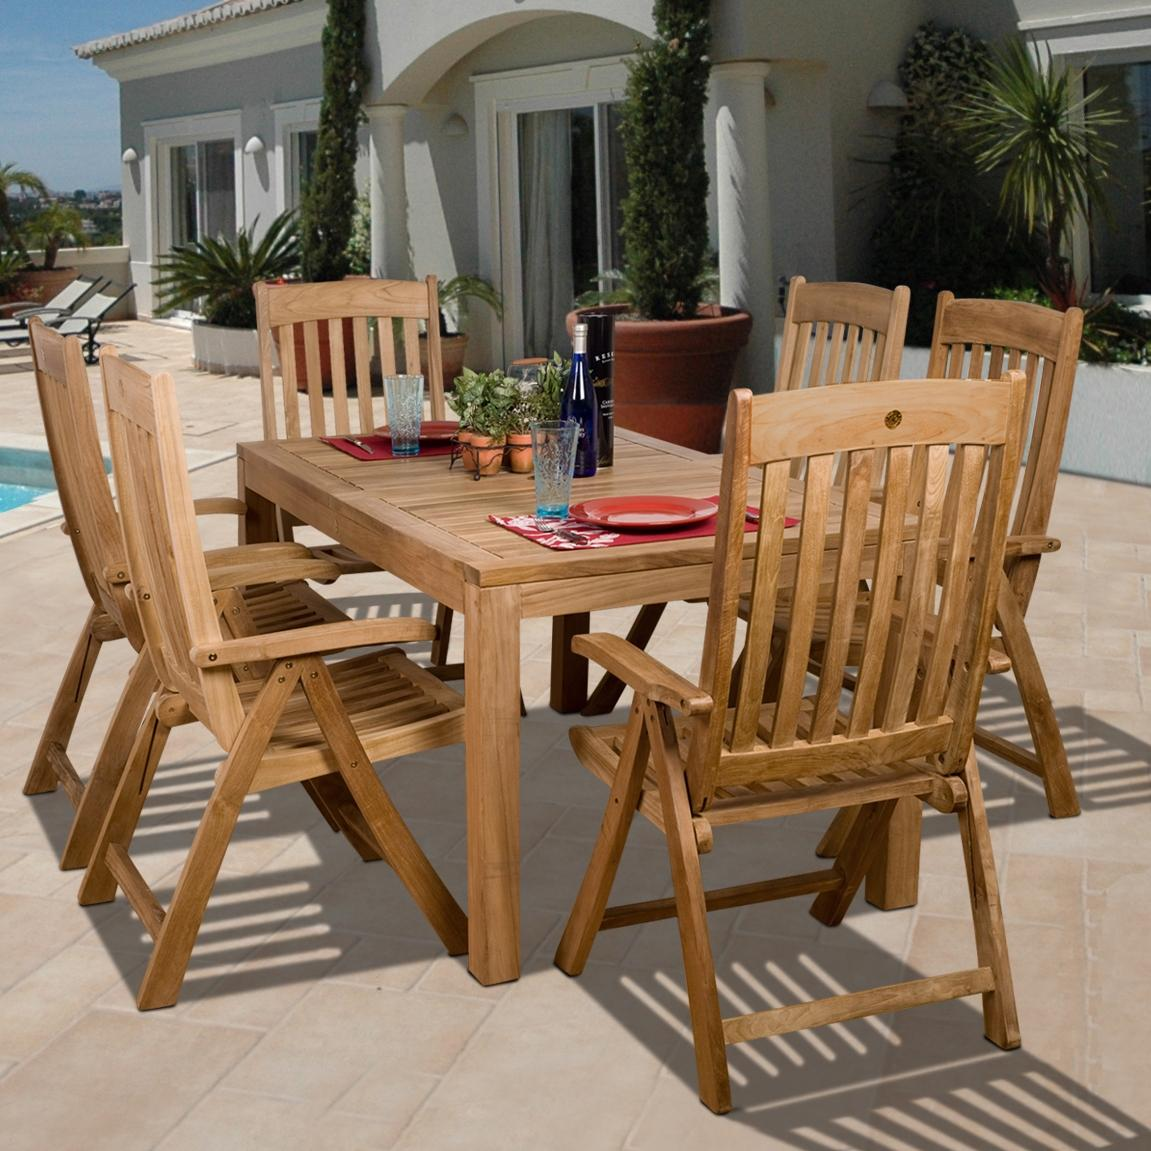 Amazonia Teak Bucarest 6-person Teak Patio Dining Set With Reclining Chairs